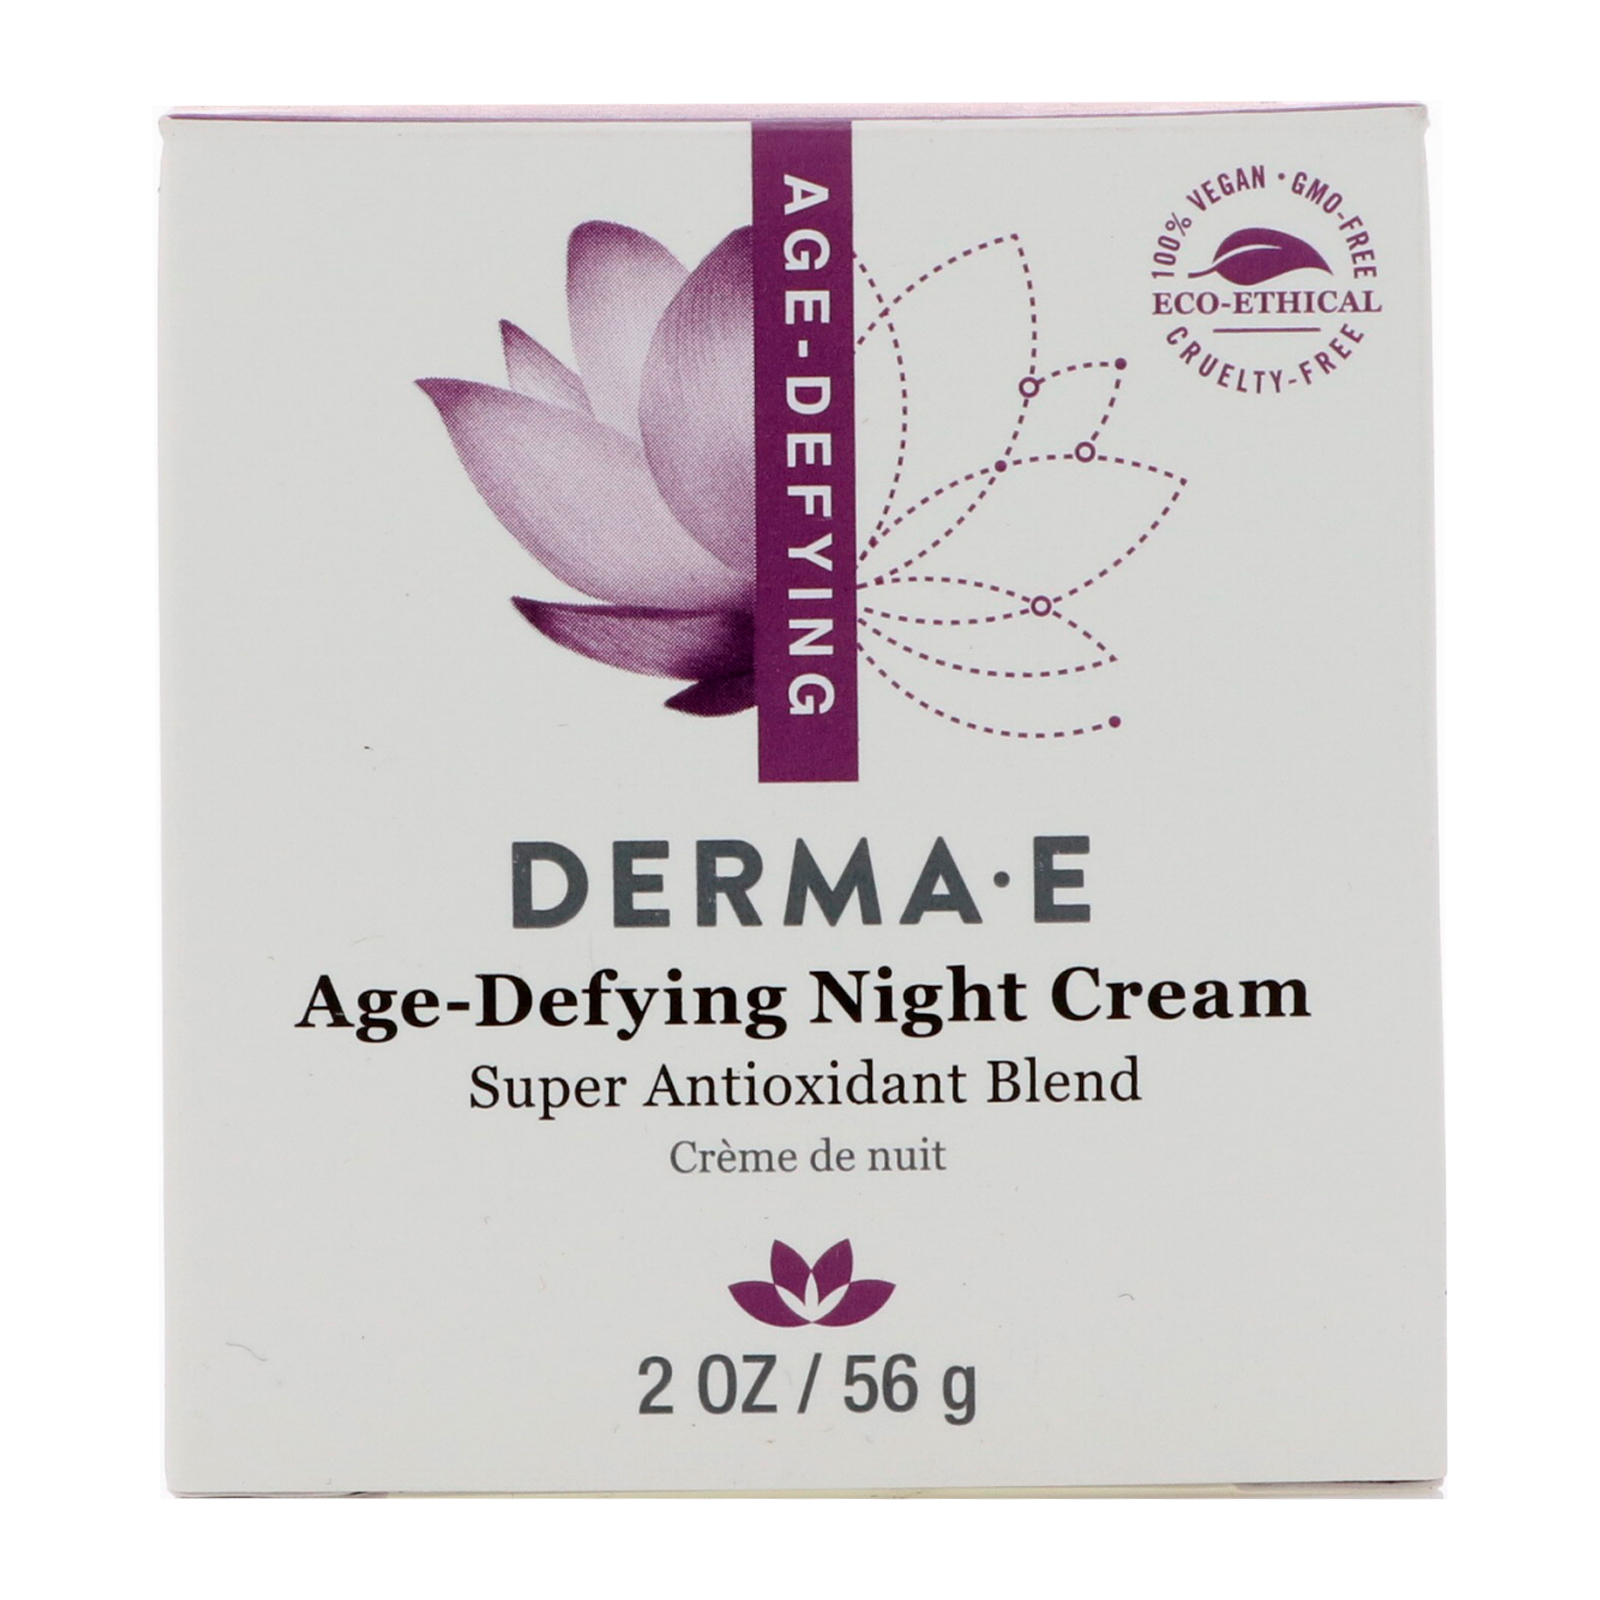 Age-Defying Day Creme With Astaxanthin and Pycogenol - 2 oz. by DERMA-E (pack of 2) Soothing Touch - Vegan Lip Balm Vanilla Rose - 0.25 oz. (pack of 4)